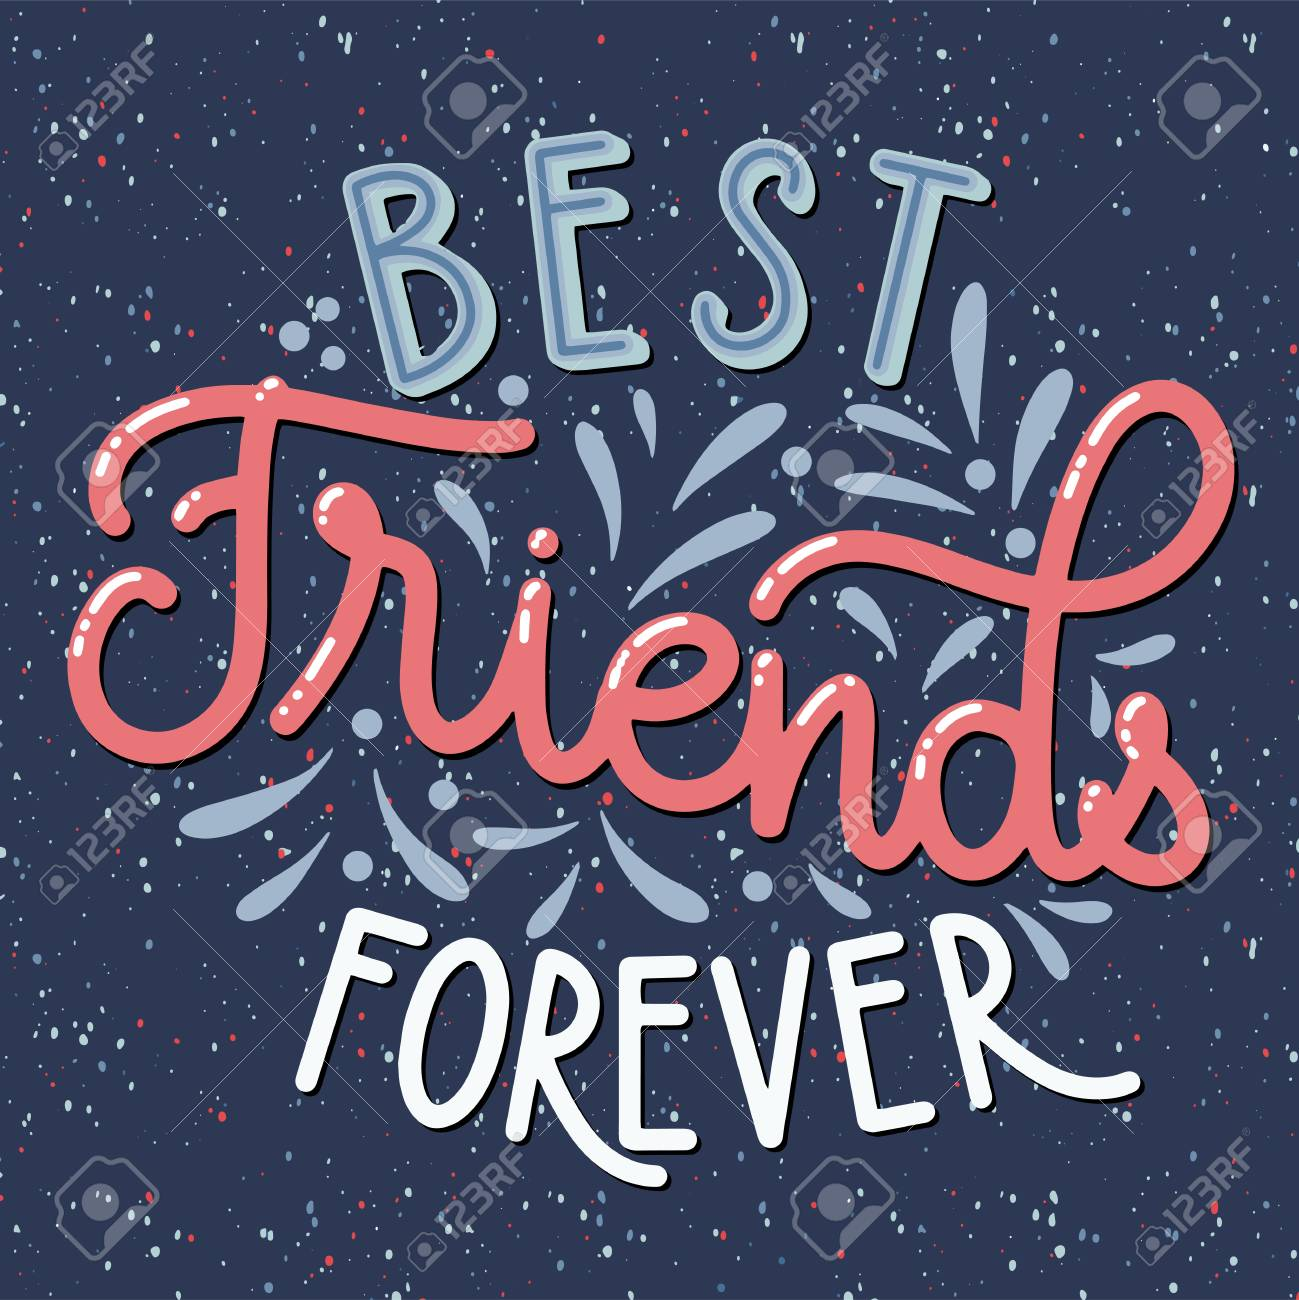 Friendship Day Hand Drawn Lettering Best Friends Forever Vector Royalty Free Cliparts Vectors And Stock Illustration Image 115047518